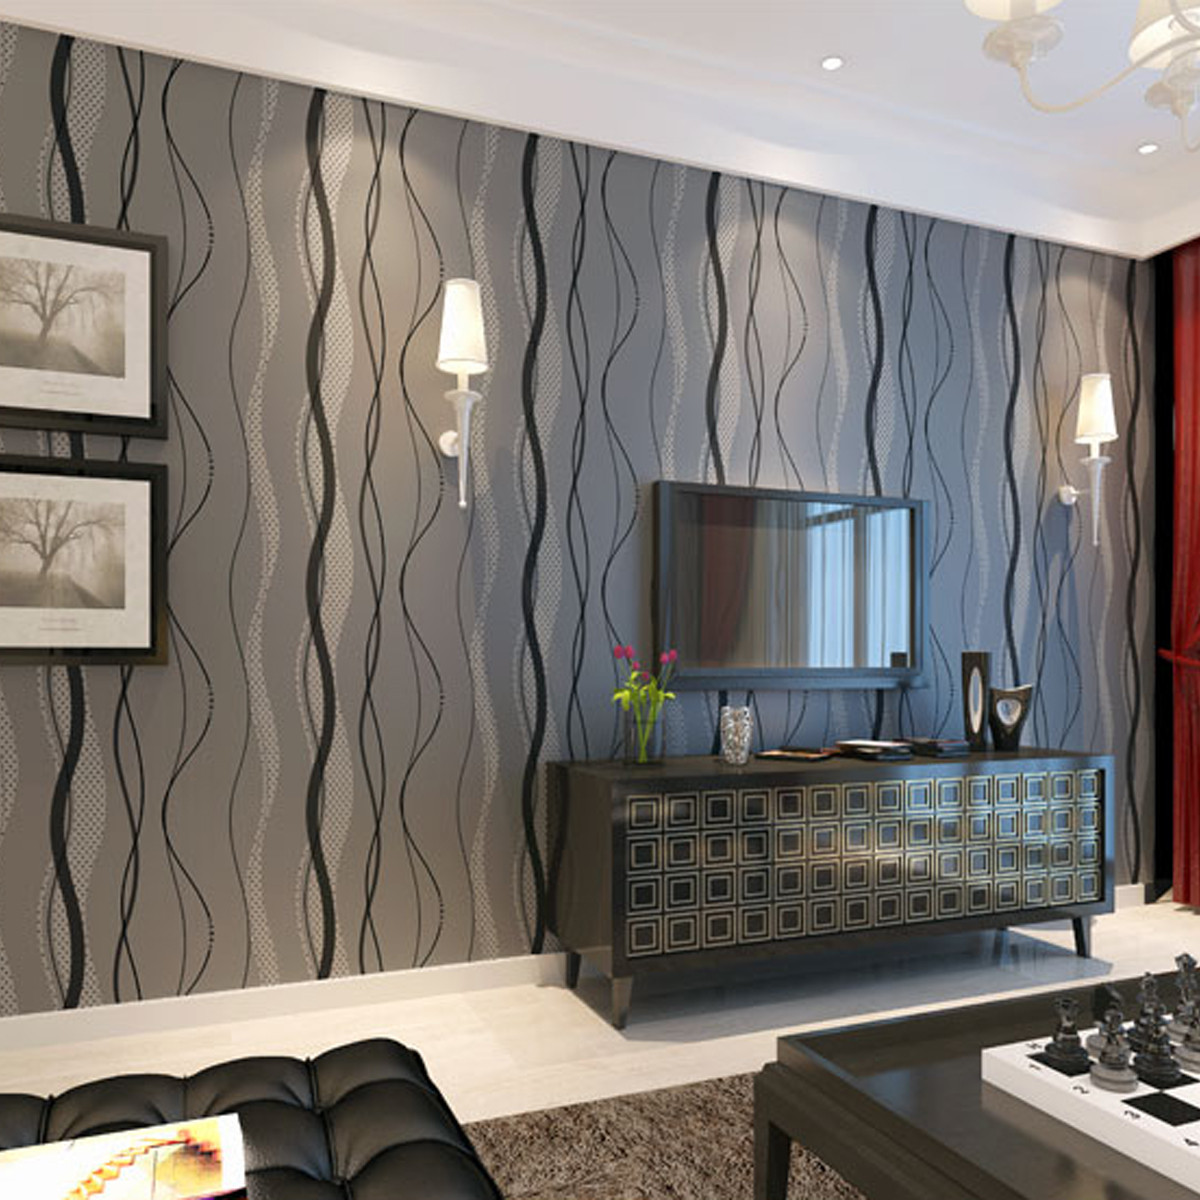 Neufu papier peint murale mur 3d courbe stripe tissu non - Feature wall ideas living room wallpaper ...